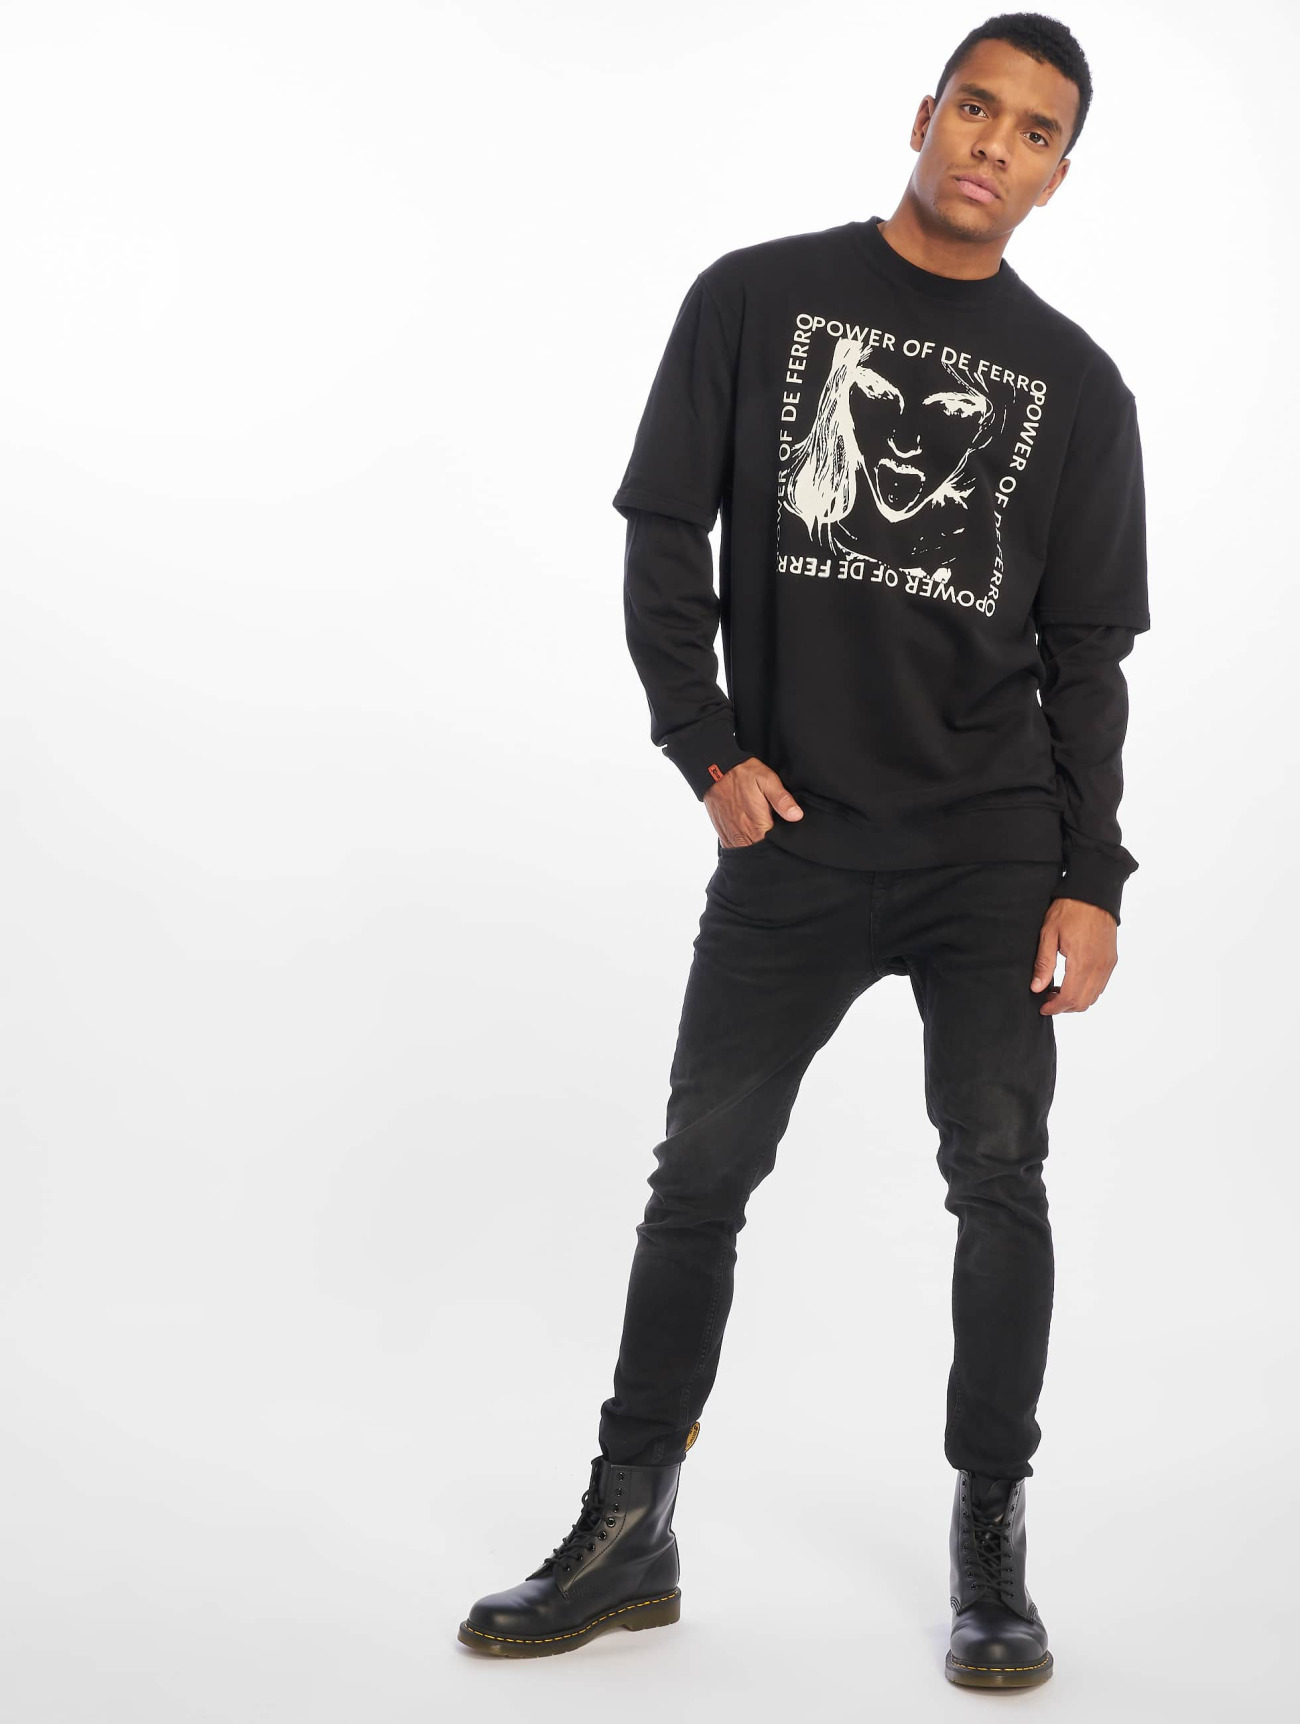 De Ferro | Arm B Tongue  noir Homme Sweat & Pull  604870| Homme Hauts